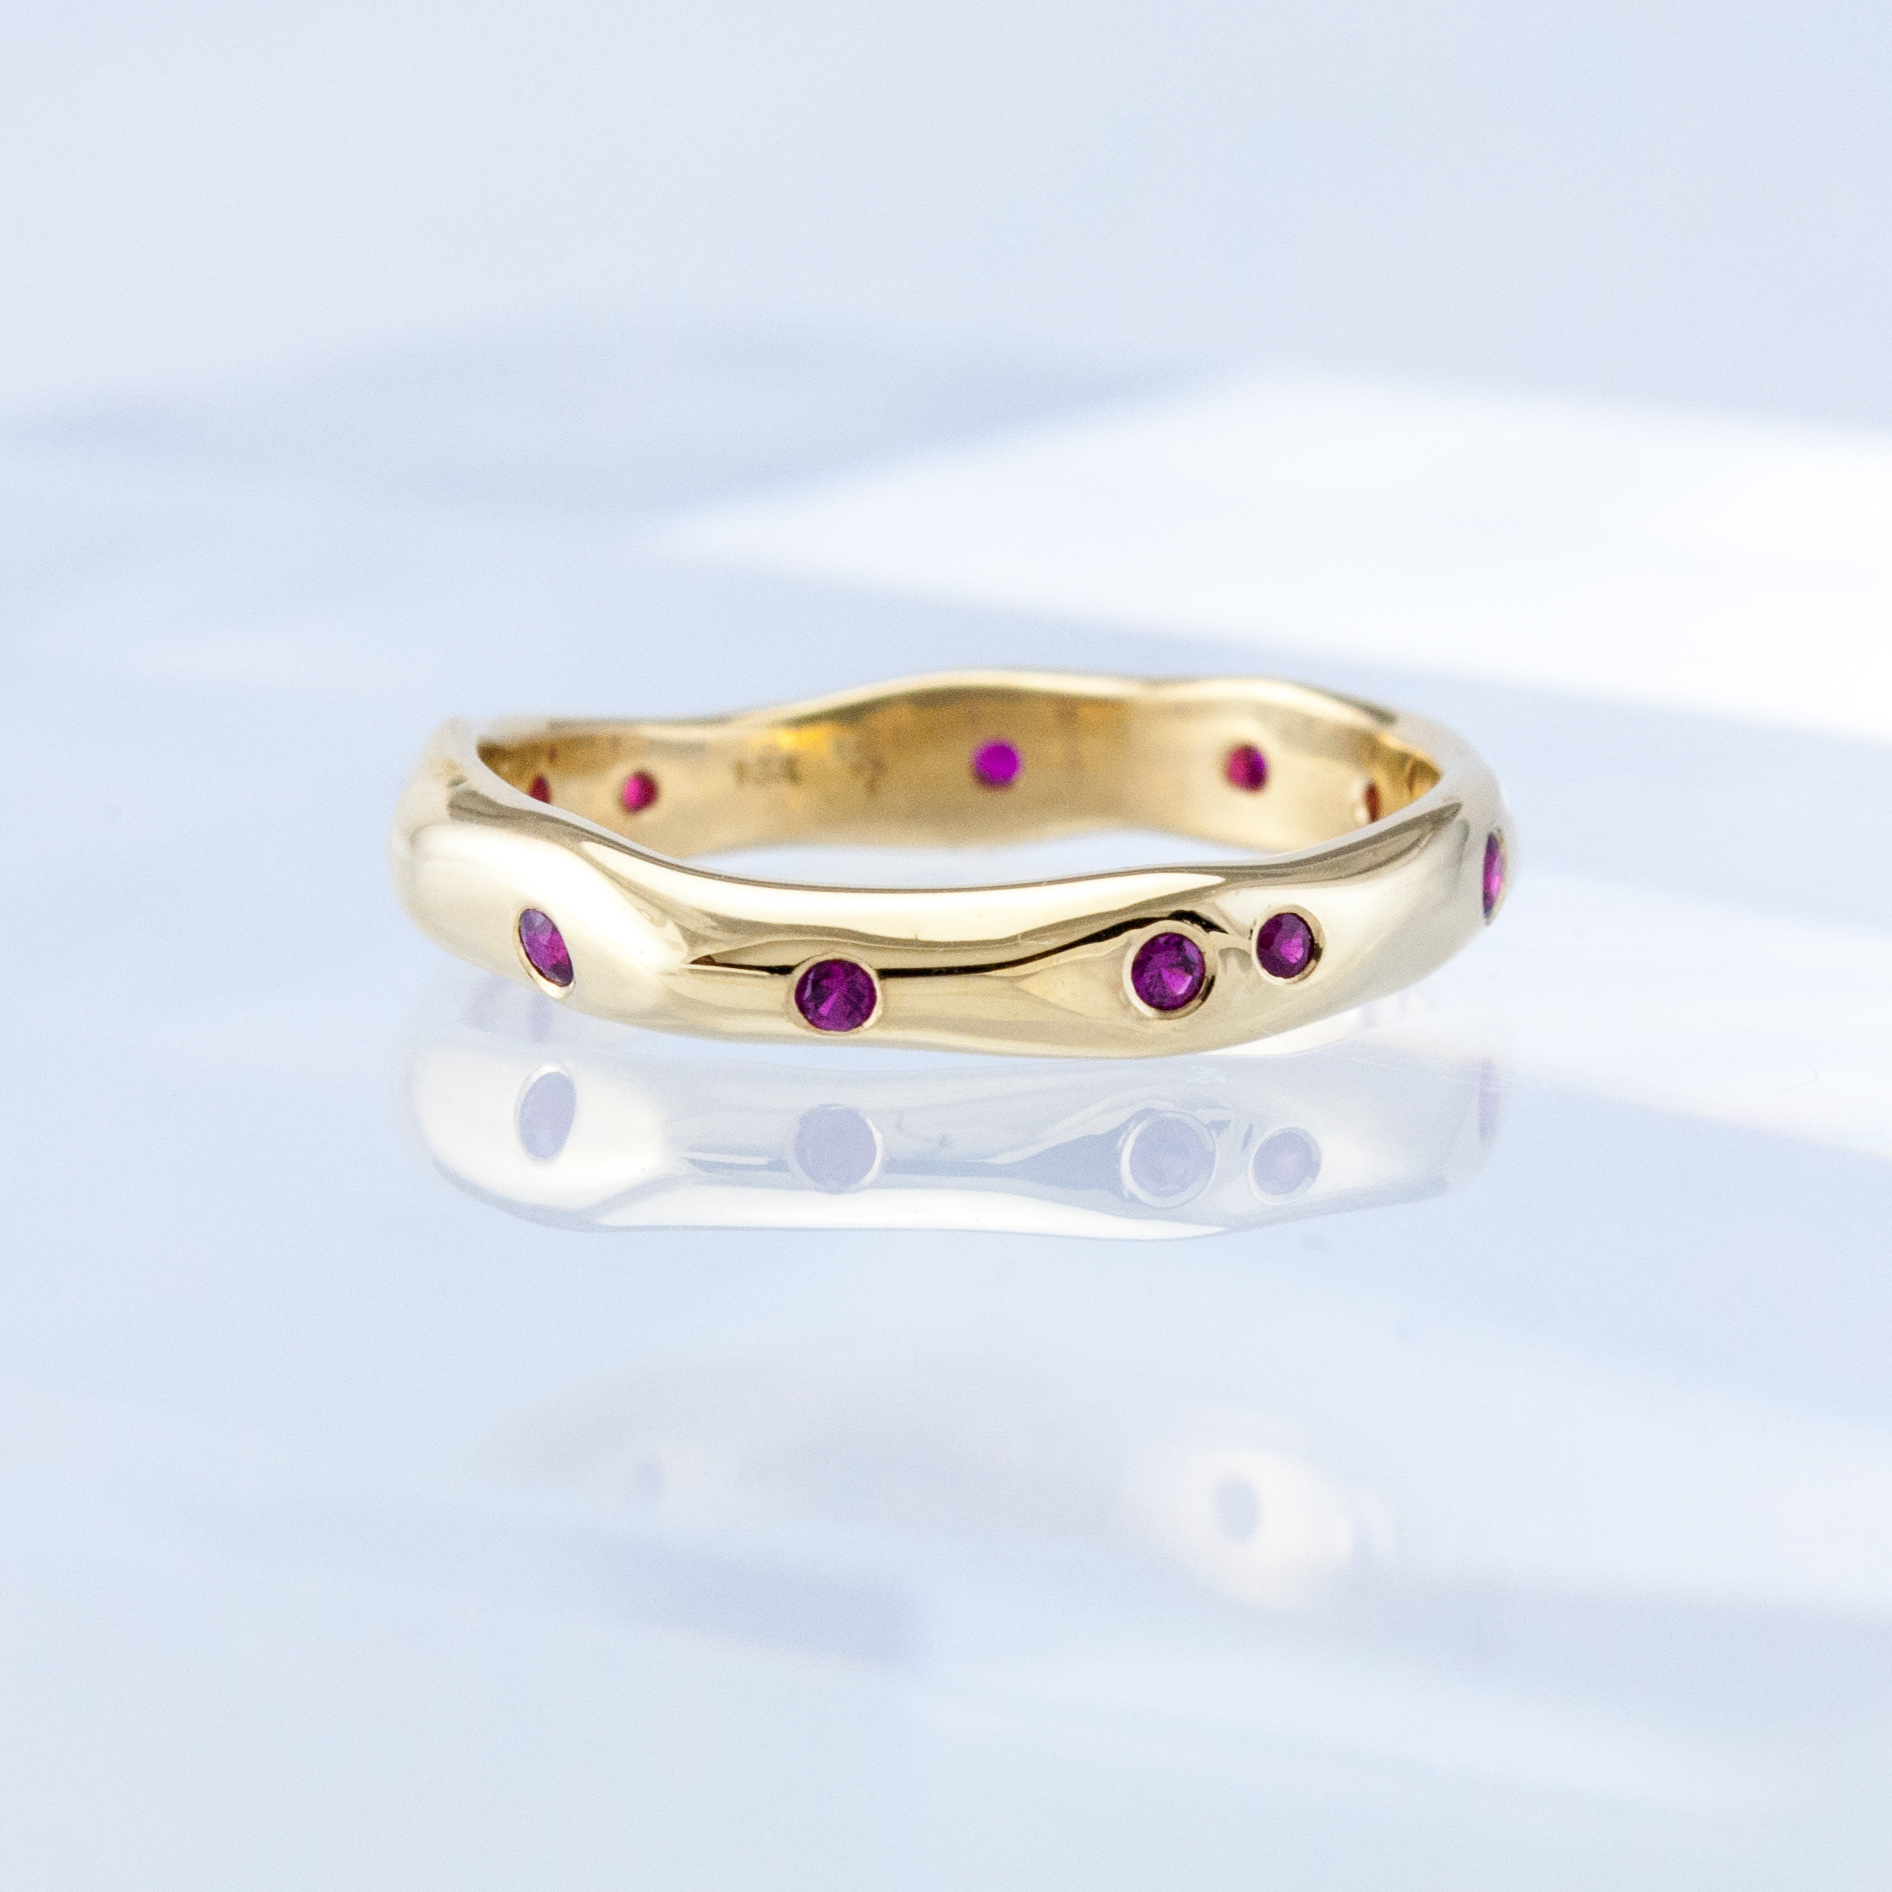 Driftwood Ring with Rubies